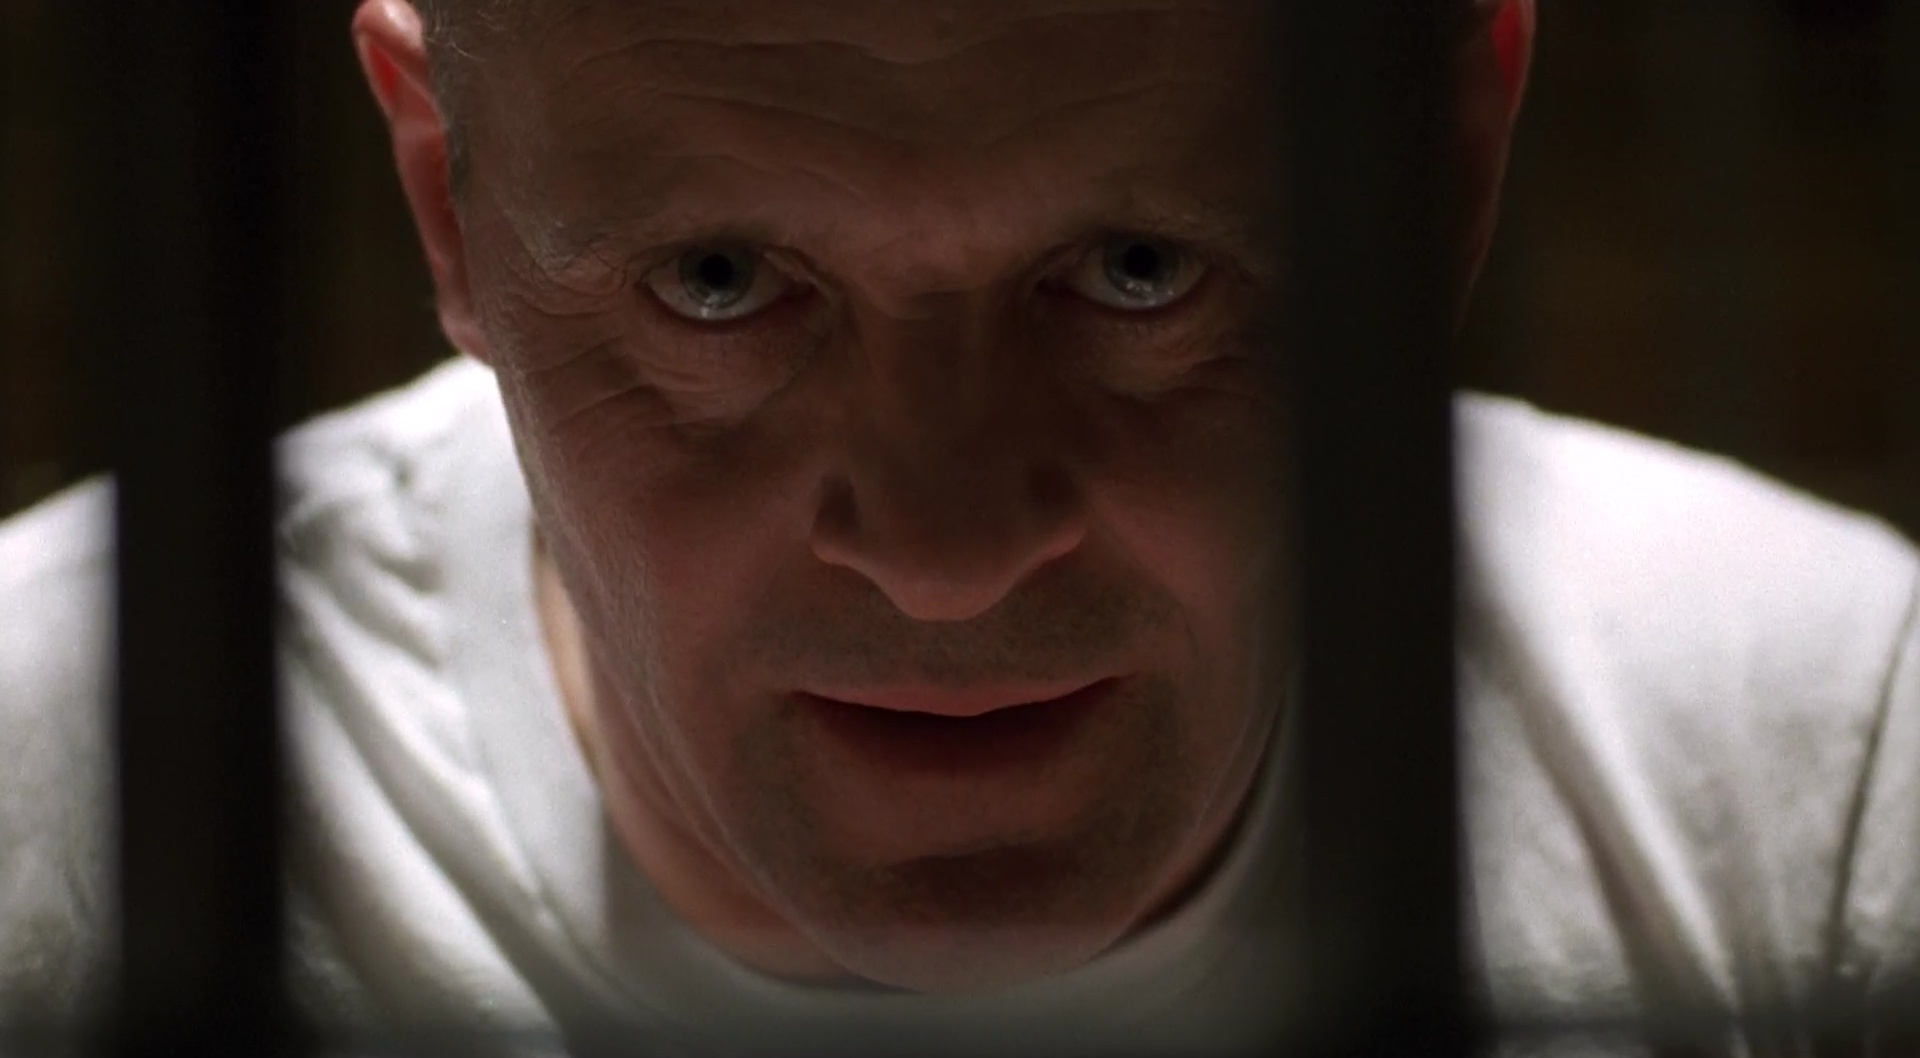 Anthony Hopkins als Dr. Hannibal Lecter in The Silence of the Lambs (OT) – dt: Das Schweigen der Lämmer (1991) © Orion Pictures/20th Century Fox Home Entertainment